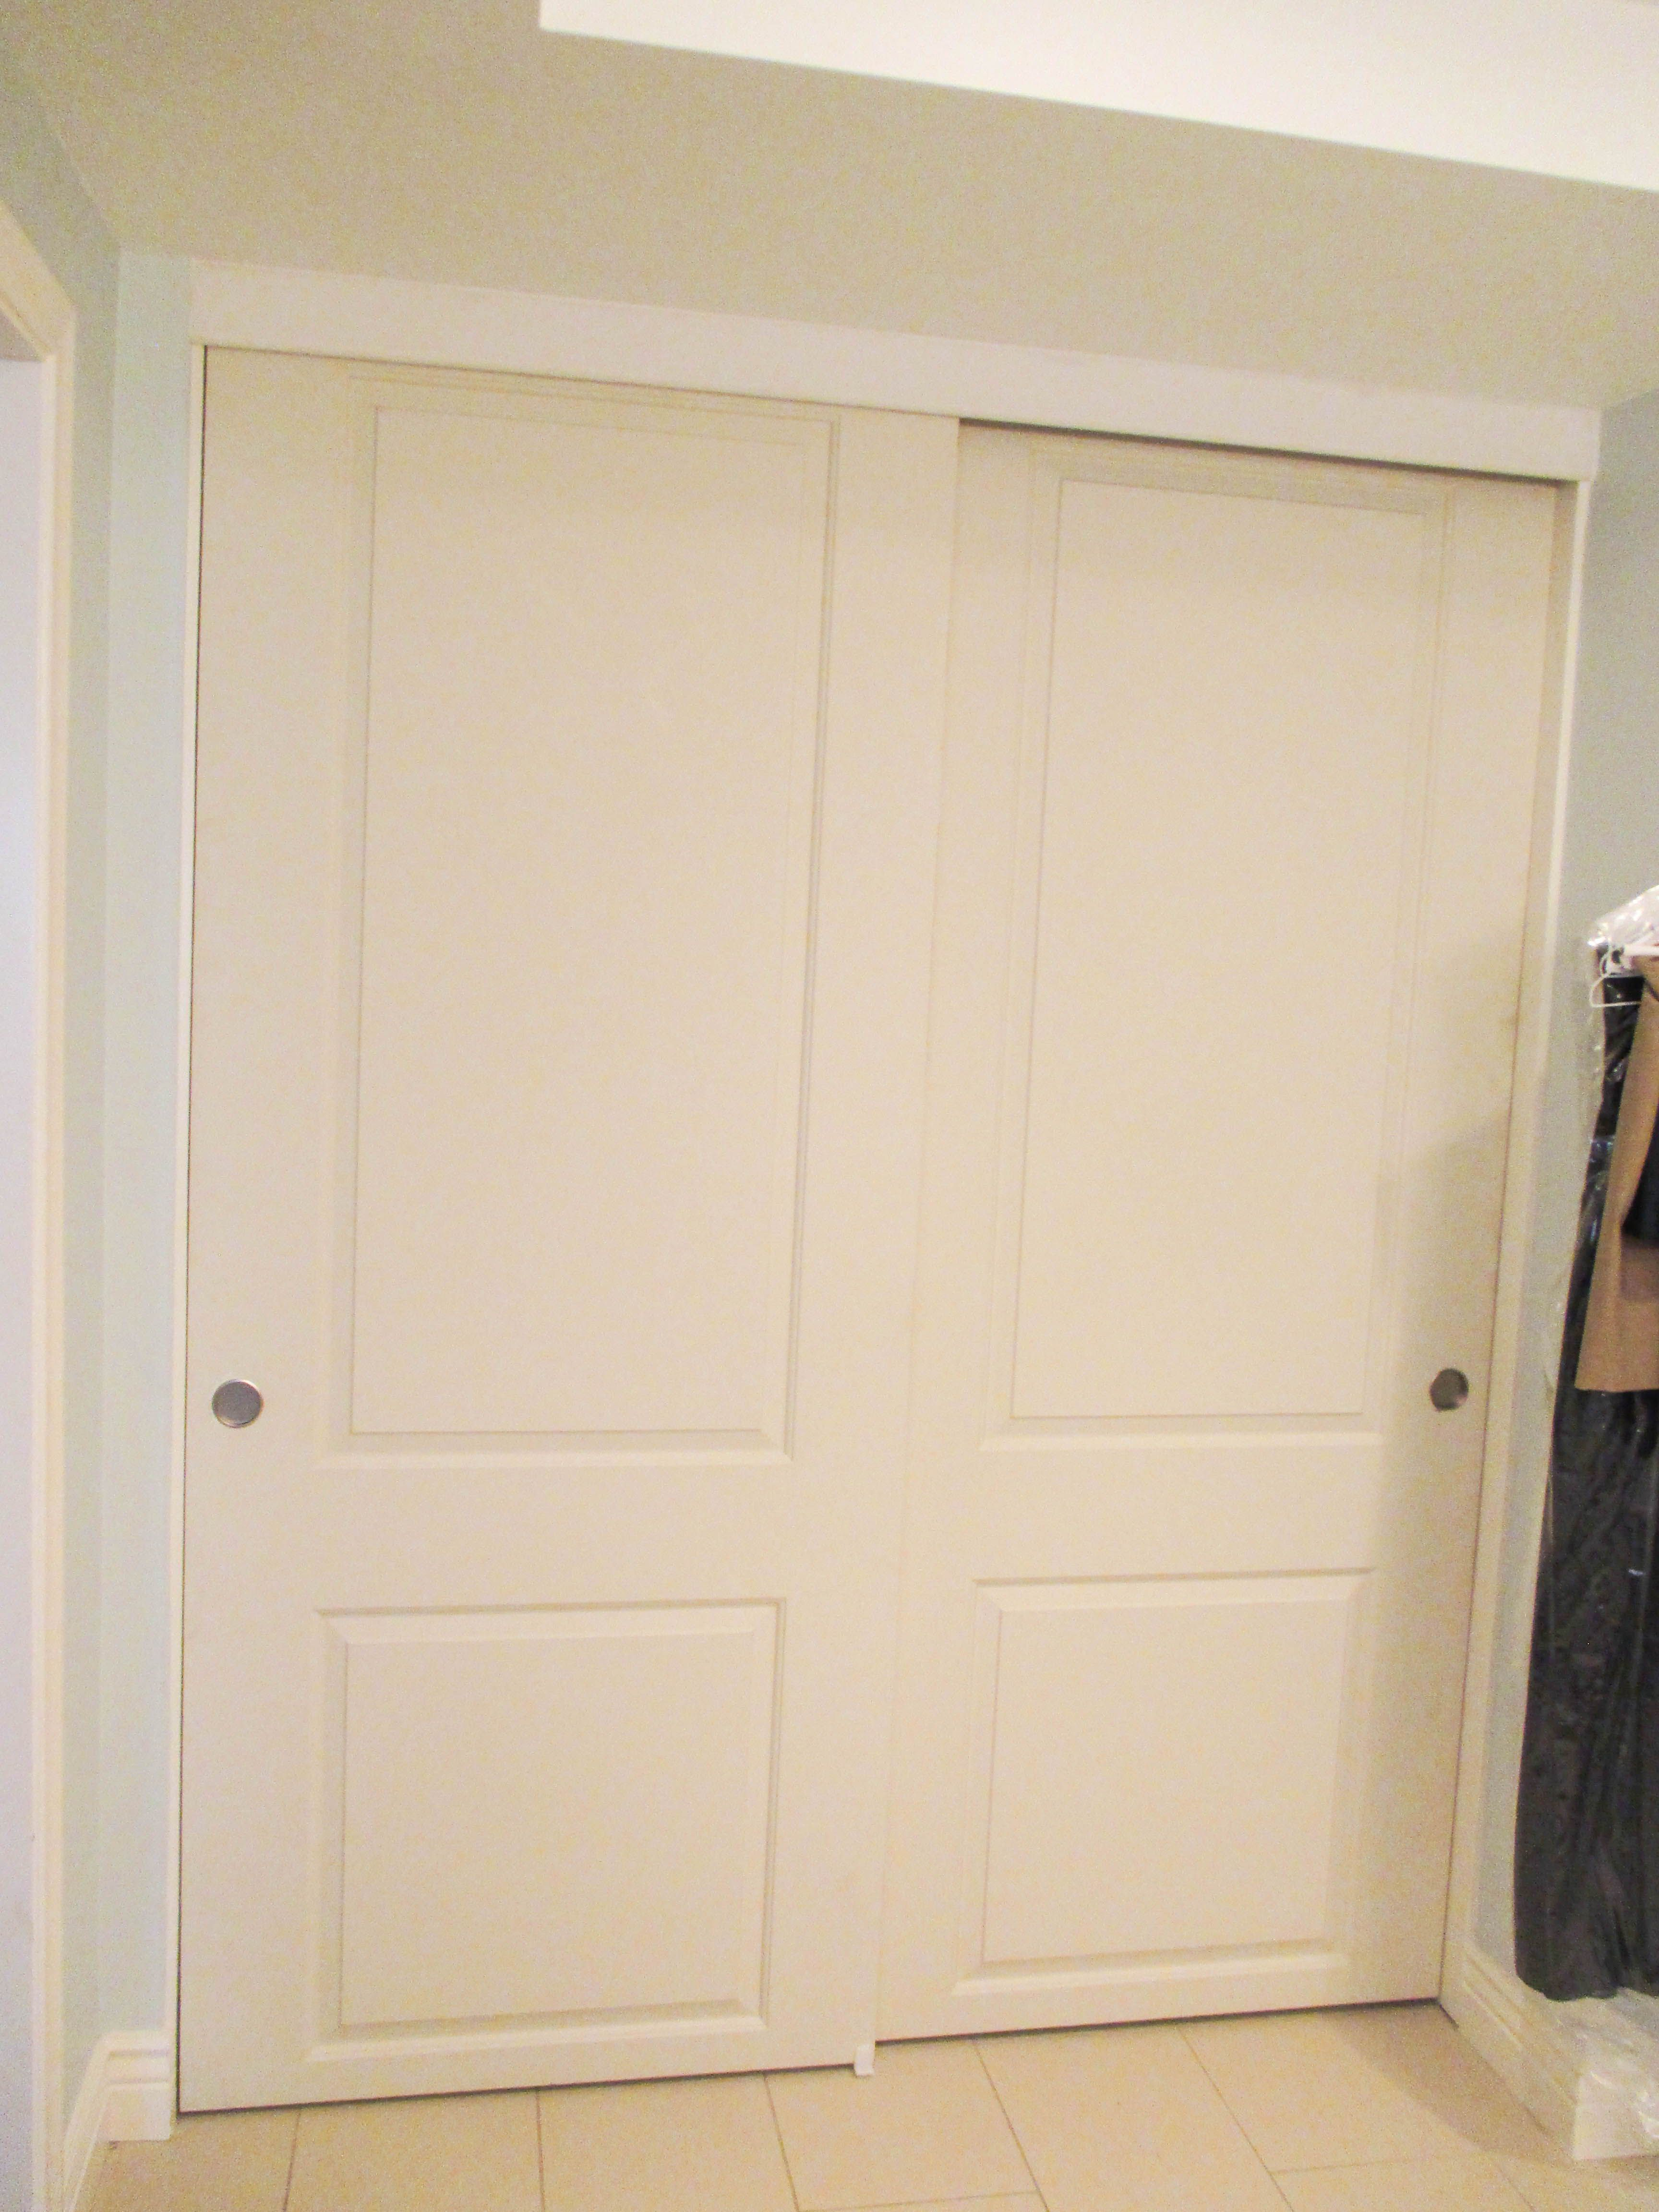 Looking To Install A New Set Of Closet Doors Check Out These 2 Track Panel Top Hung Byp With Colonial Designs That Our Team